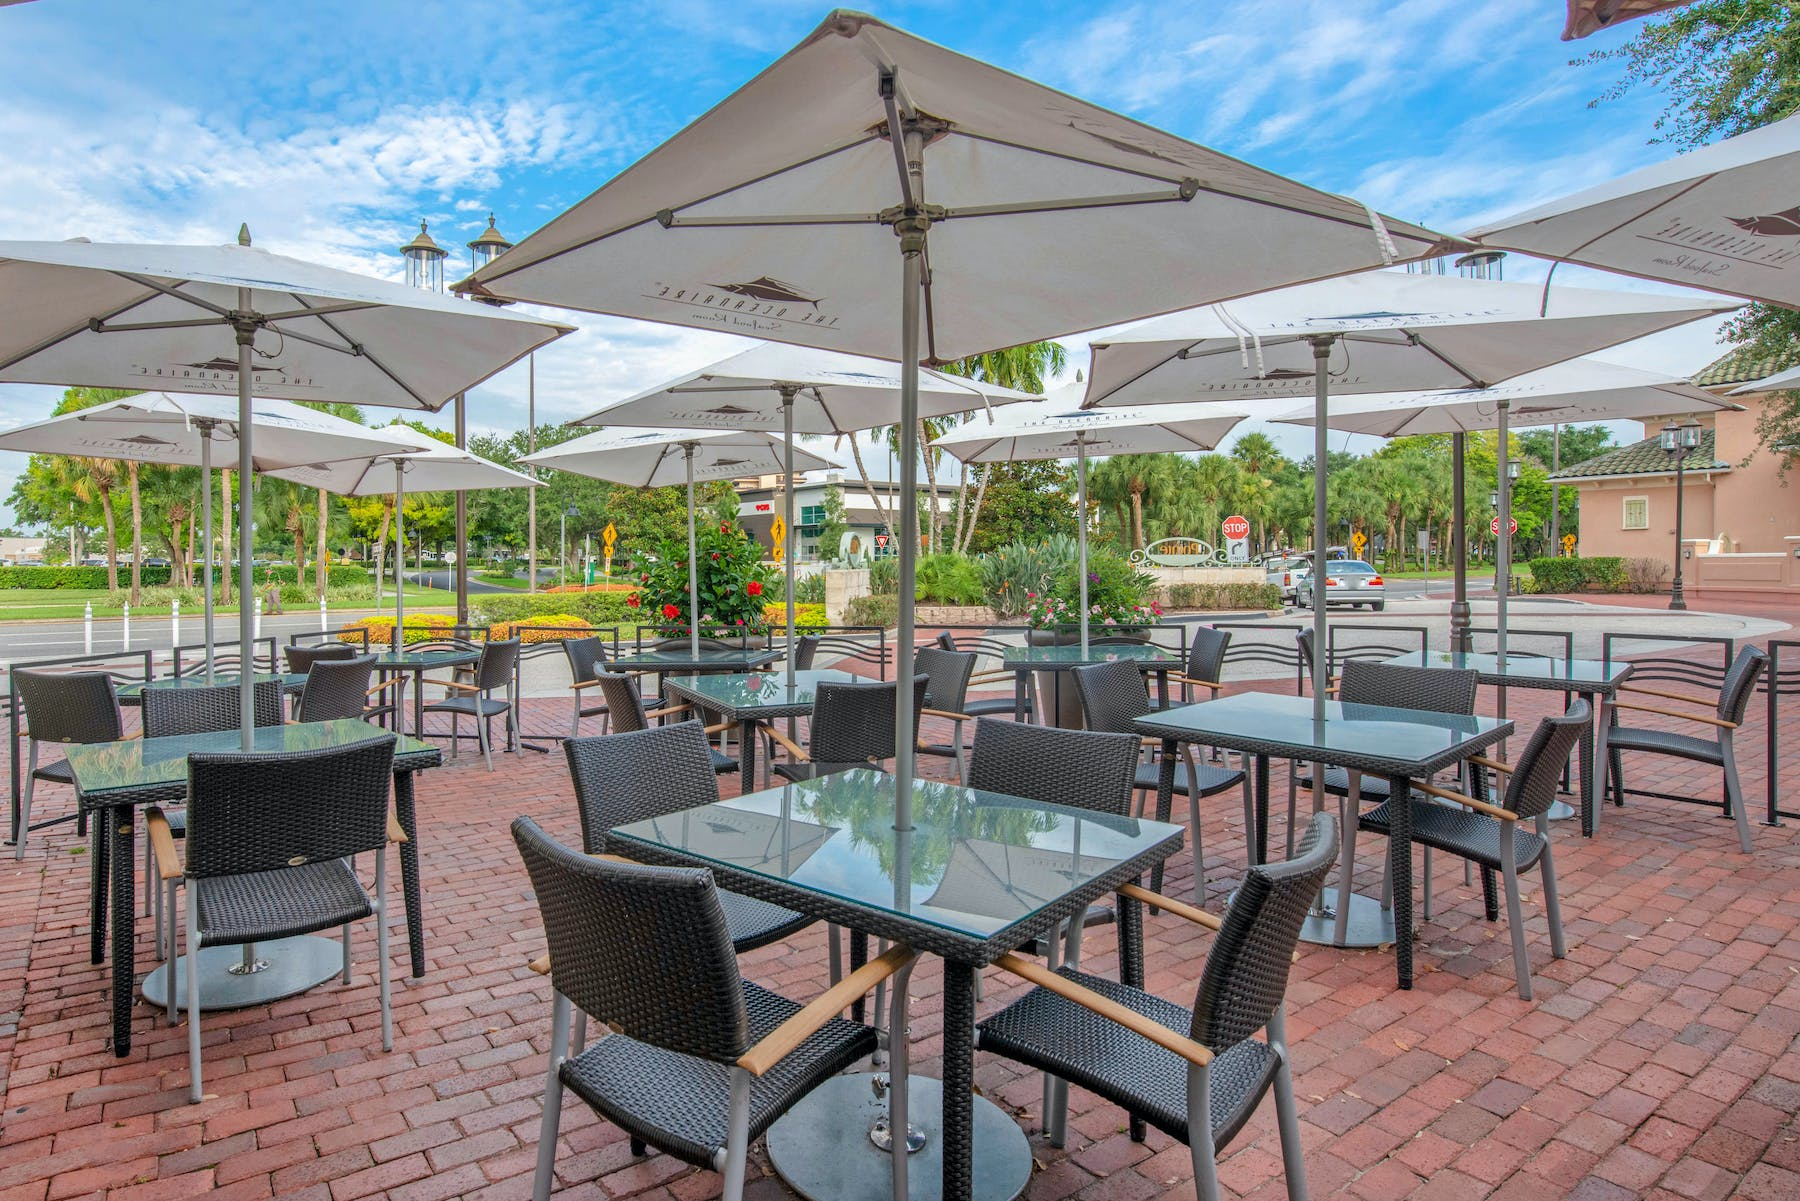 eating tables set with chairs and umbrellas outside